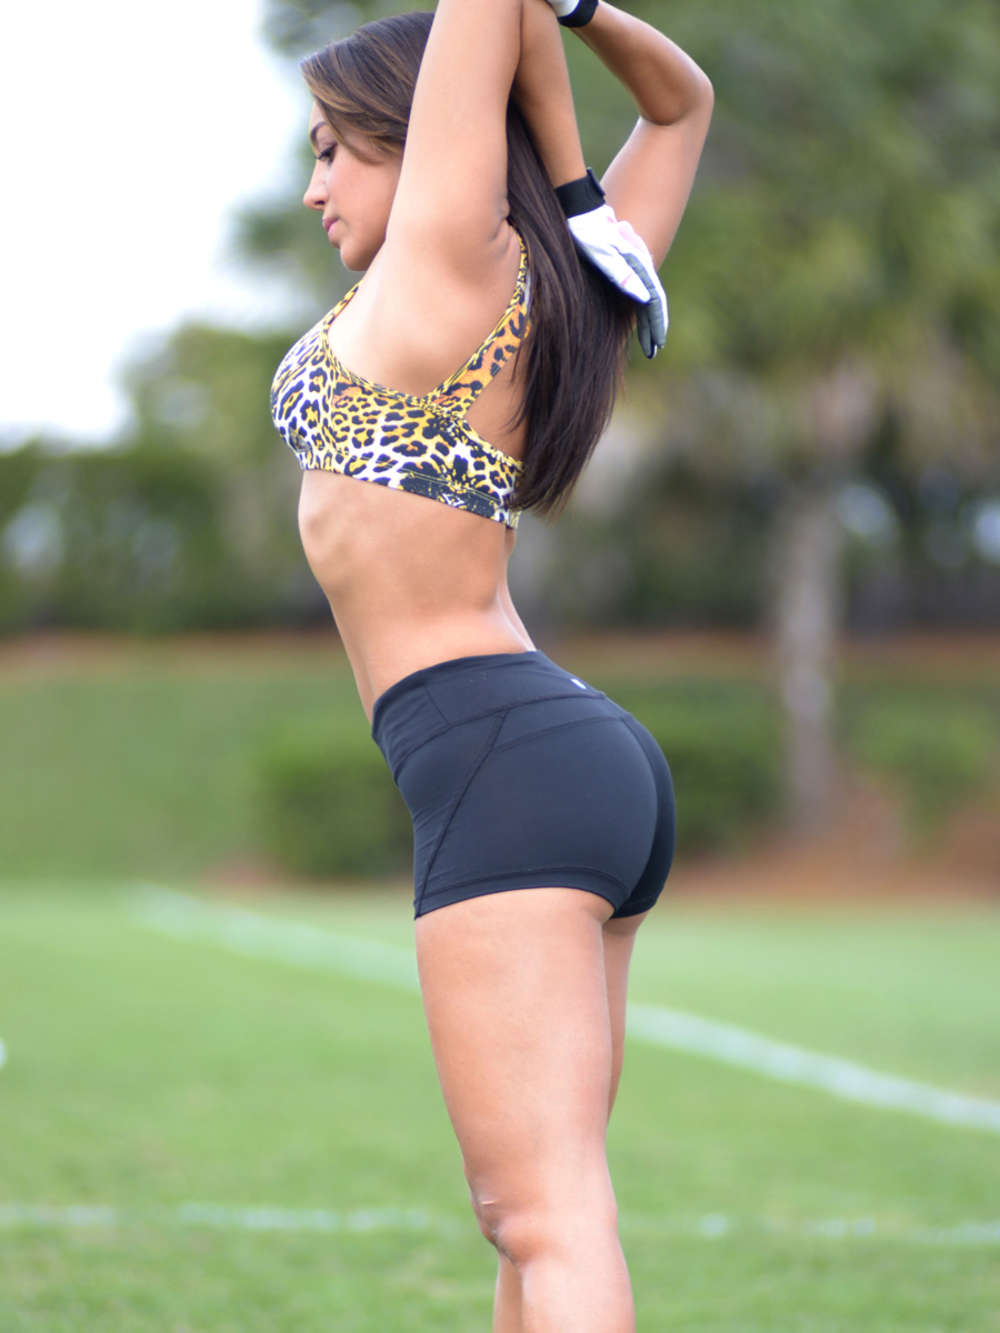 Andrea-Calle-Working-Out-Miami-Park-Kanoni-5